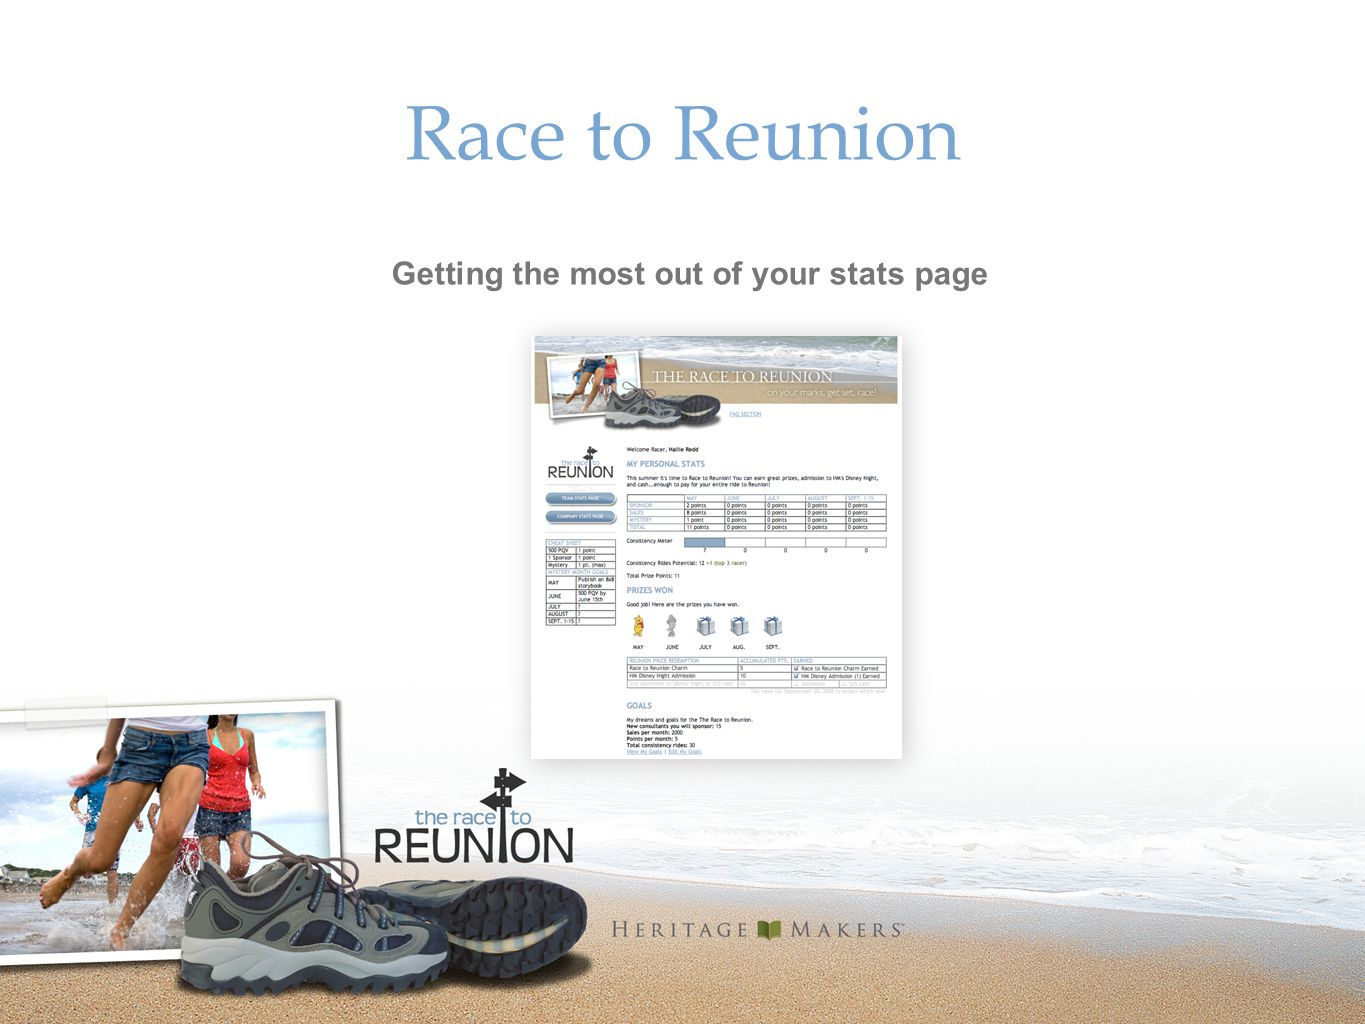 Race to Reunion Getting the most out of your stats page